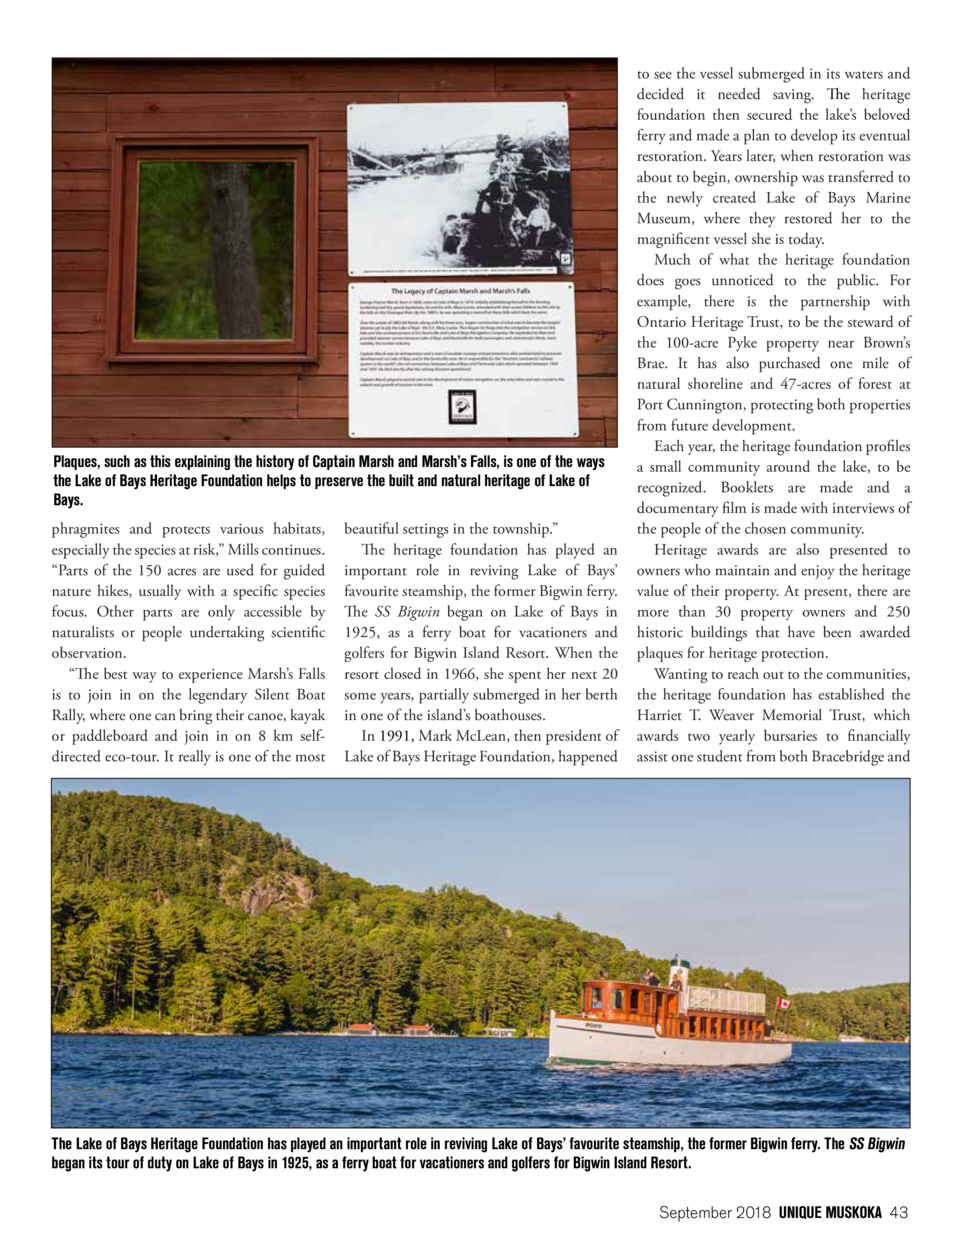 Plaques, such as this explaining the history of Captain Marsh and Marsh   s Falls, is one of the ways the Lake of Bays Her...